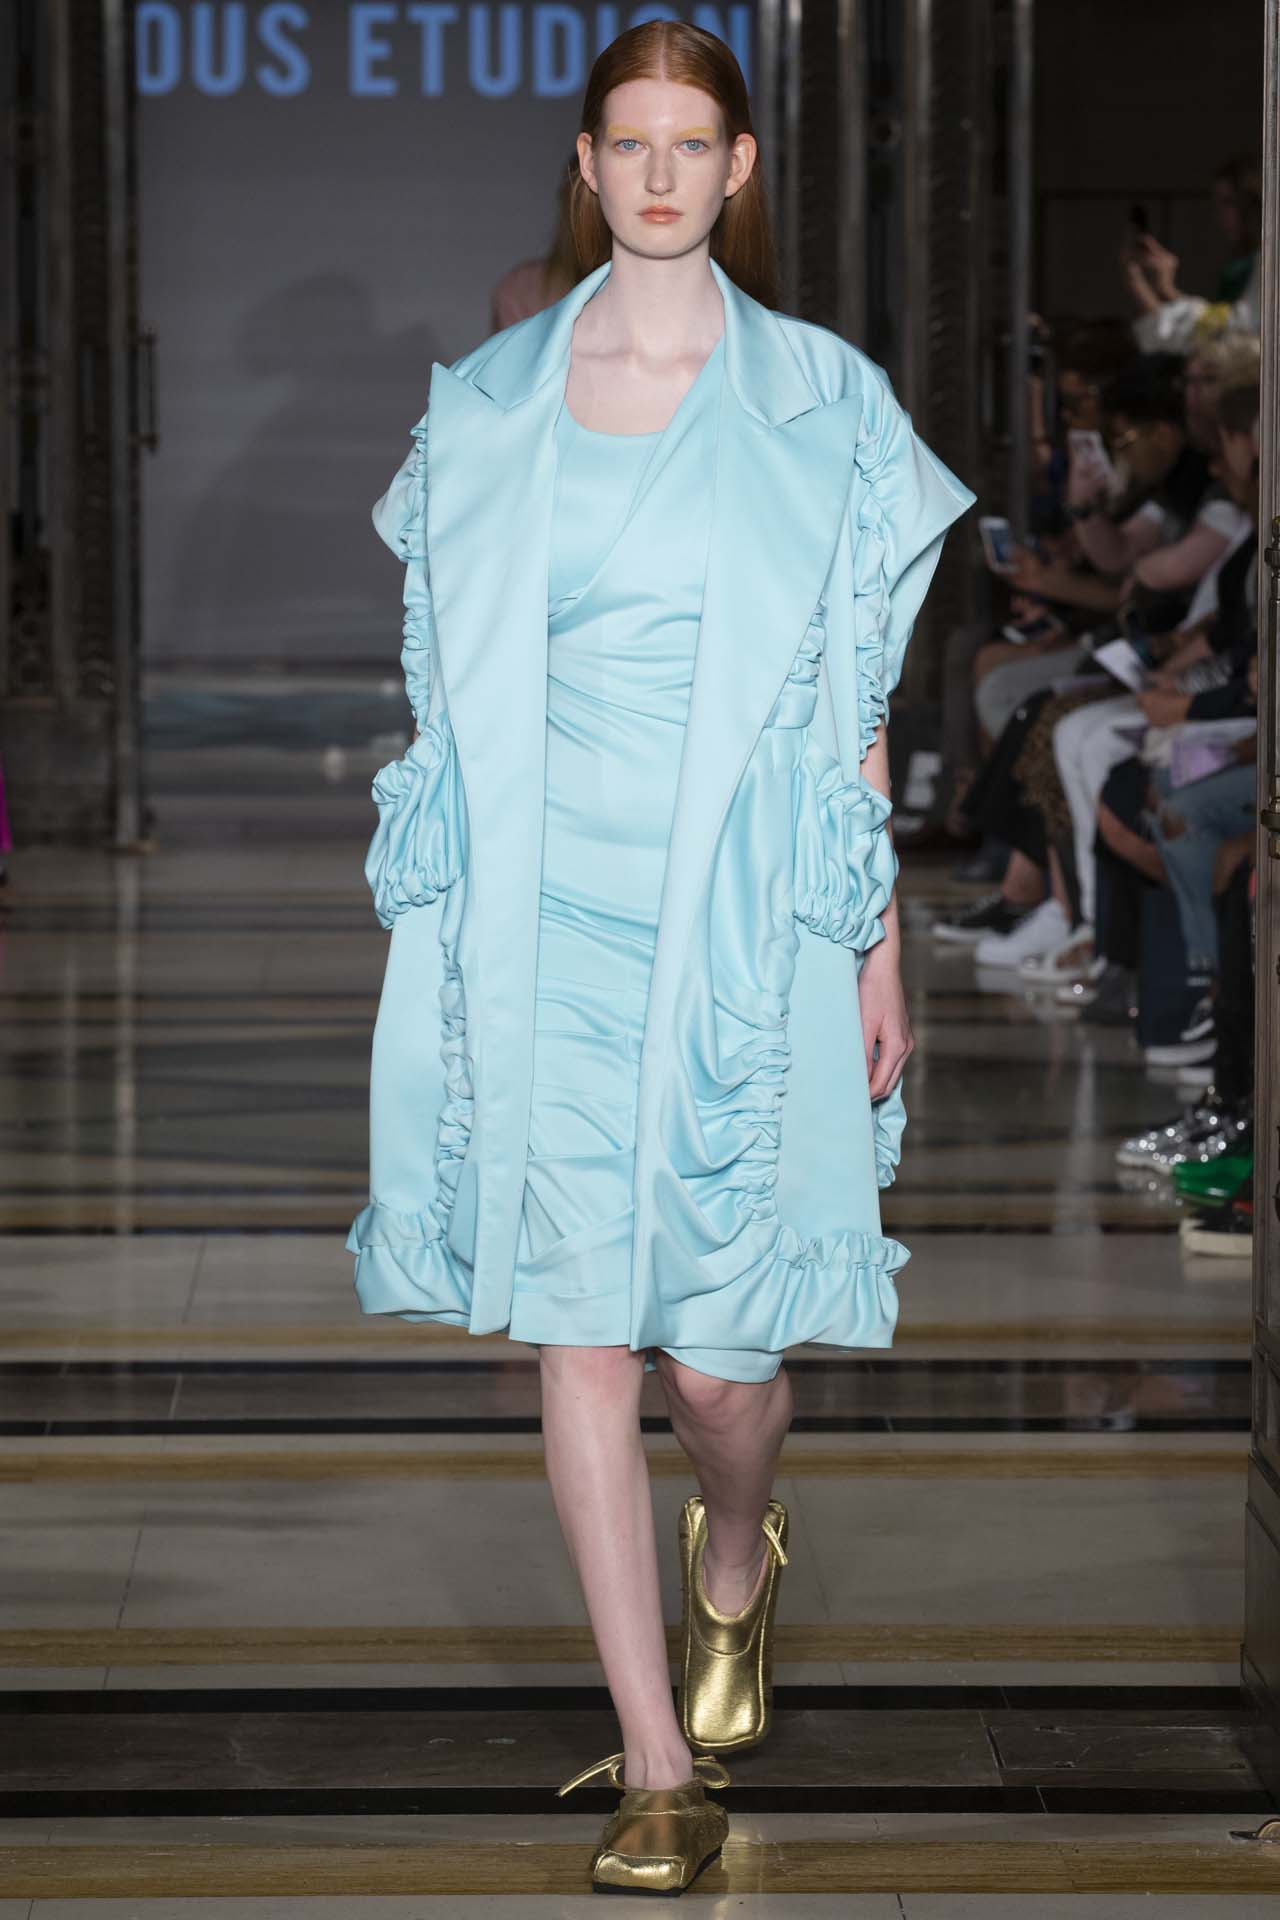 Nous etudions ones to watch fashion scout ss19 (8)